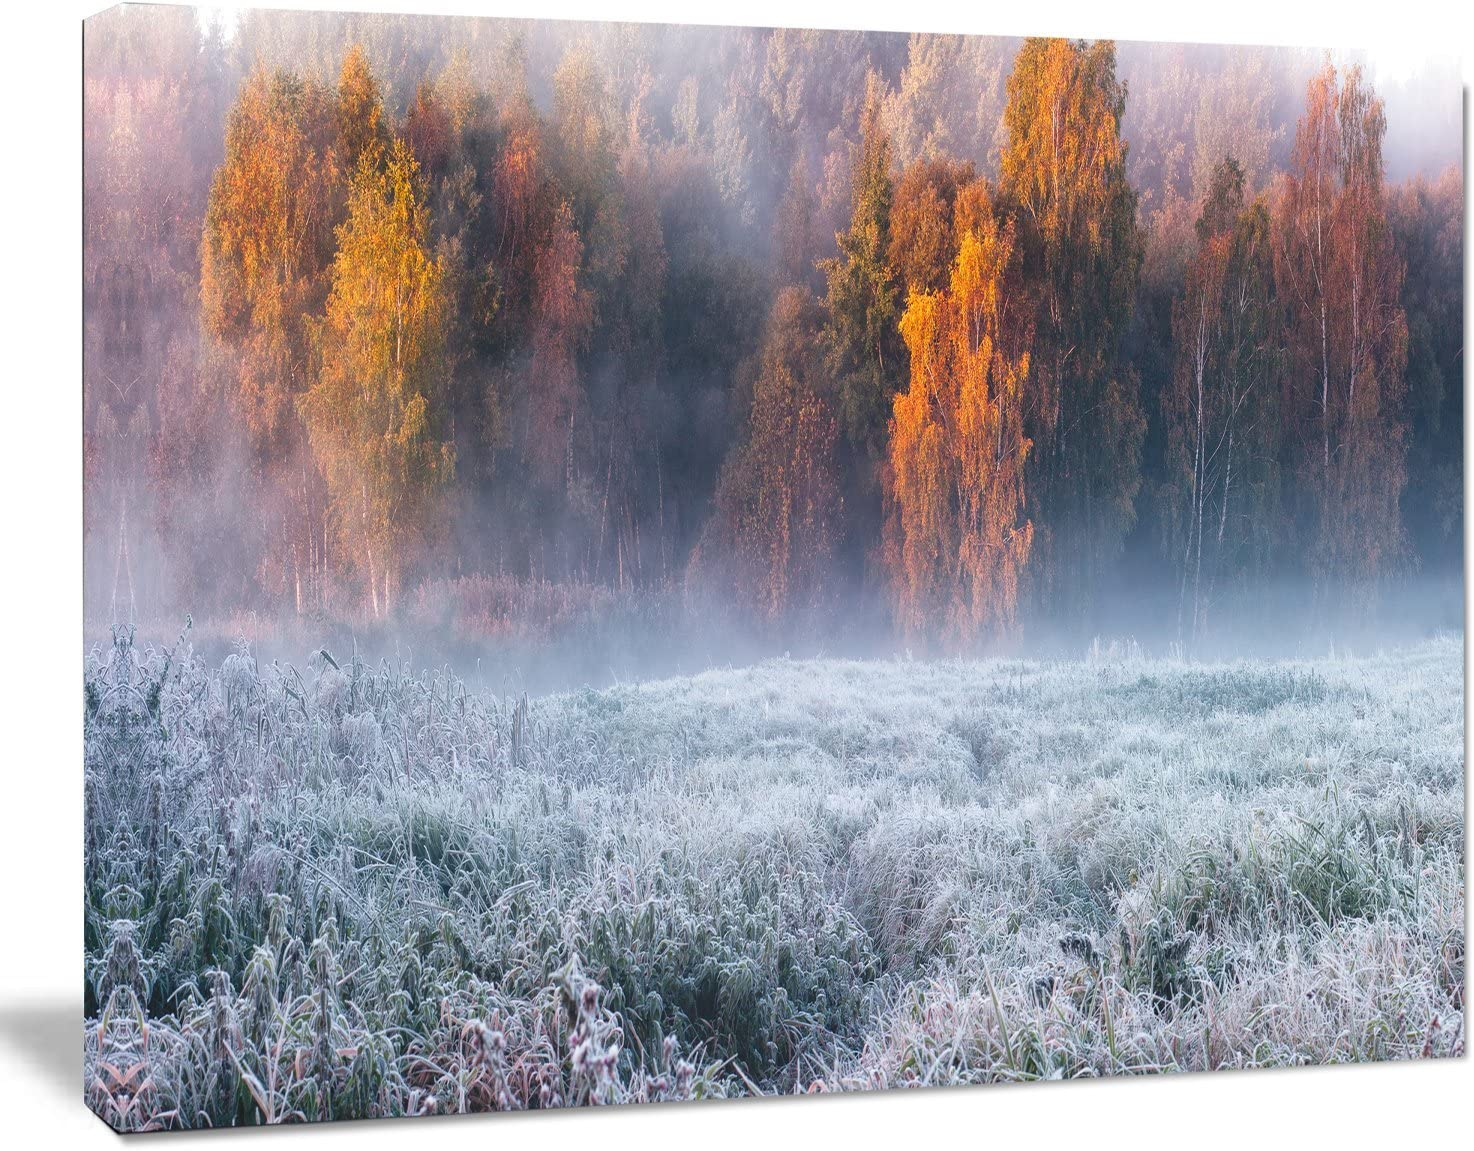 Amazon Com Designart Pt11295 20 12 Grey Hoarfrost Design By Winter Landscape Print Wall Artwork 20x12 12 H X 20 W X 1 D 1p Home Kitchen